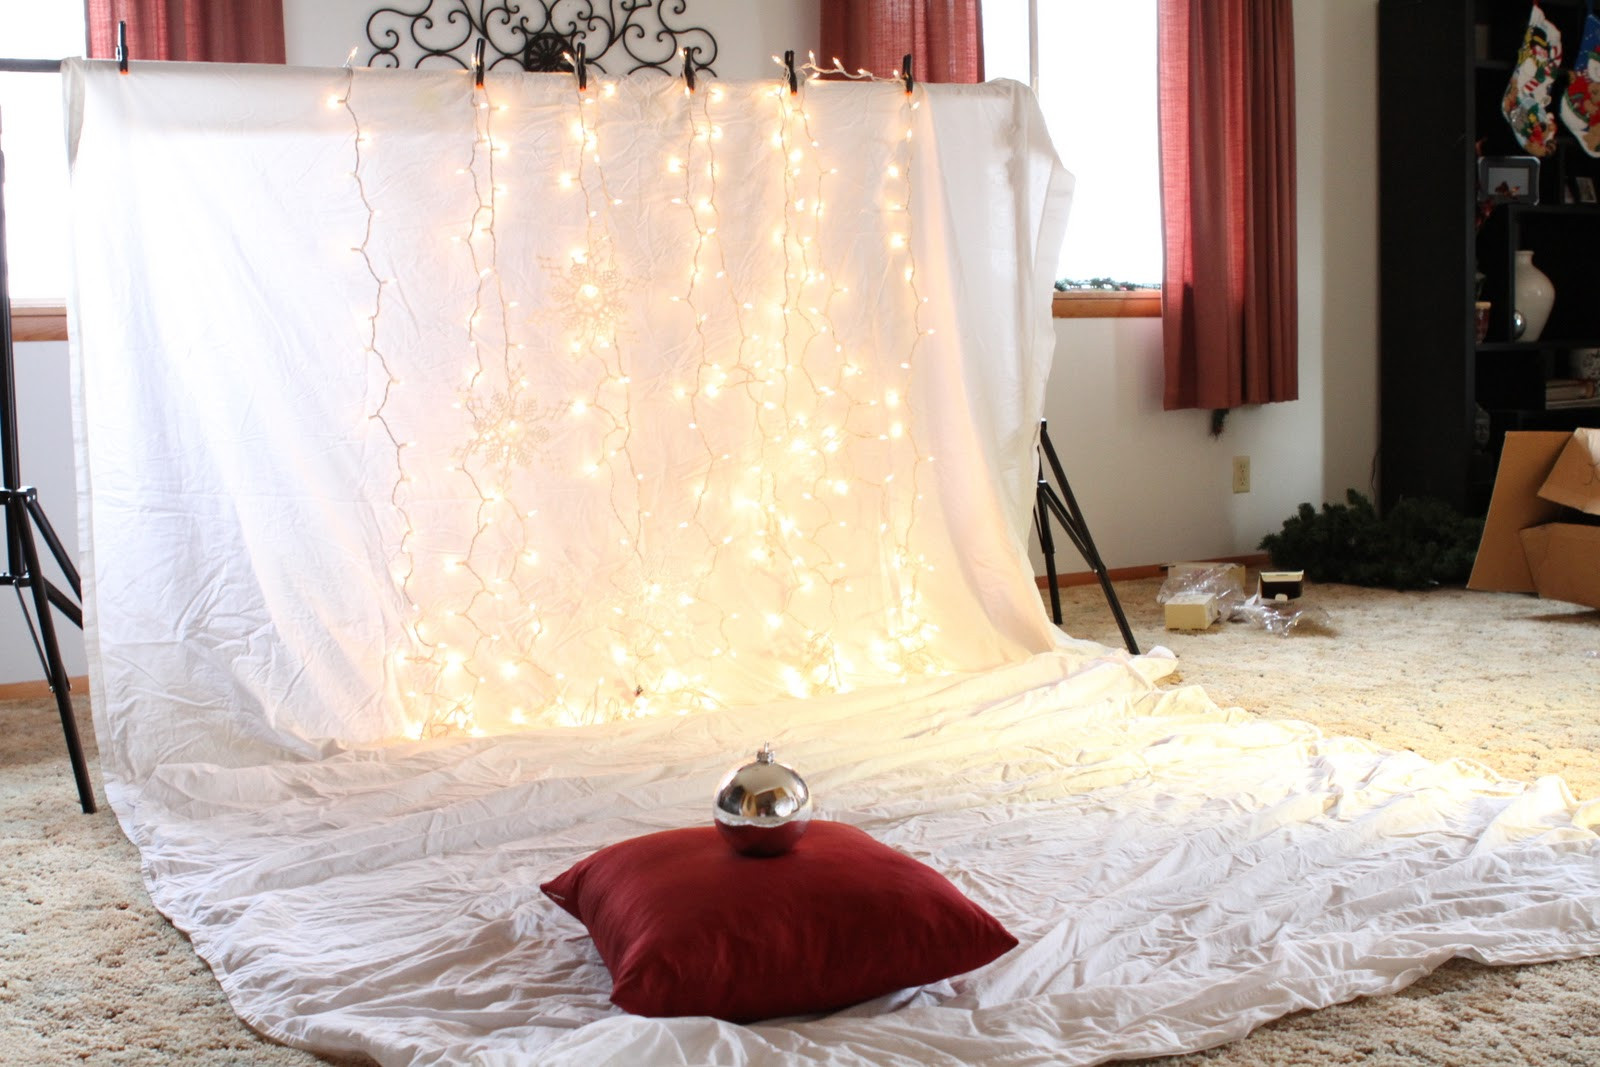 Best ideas about DIY Christmas Photography . Save or Pin Ella Rose Portrait Arts Now.